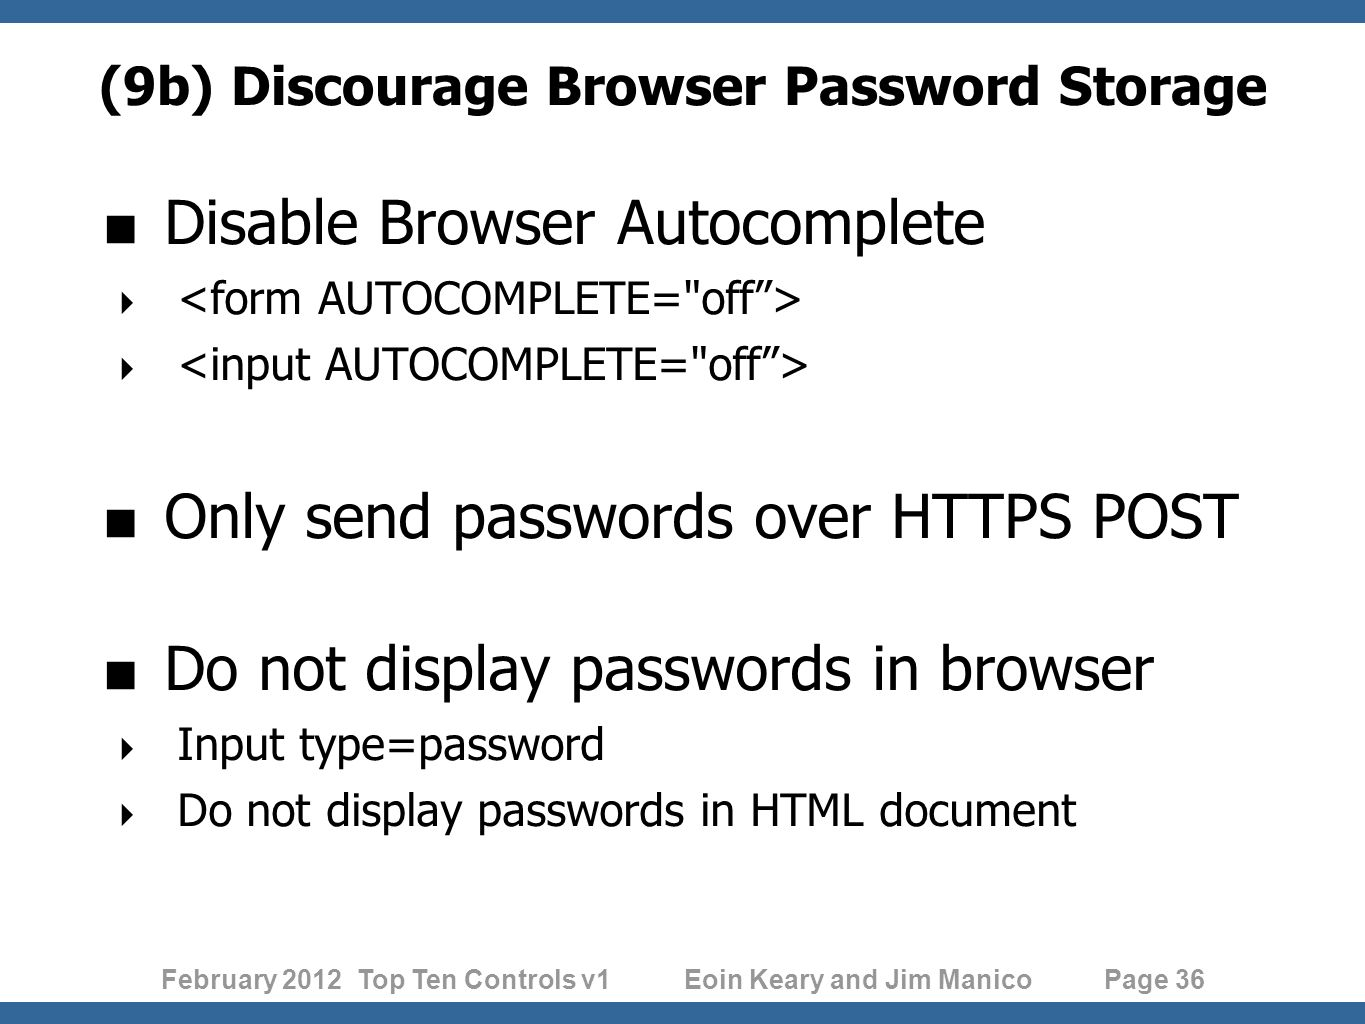 February 2012 Top Ten Controls v1 Eoin Keary and Jim Manico Page 36 (9b) Discourage Browser Password Storage Disable Browser Autocomplete Only send passwords over HTTPS POST Do not display passwords in browser Input type=password Do not display passwords in HTML document